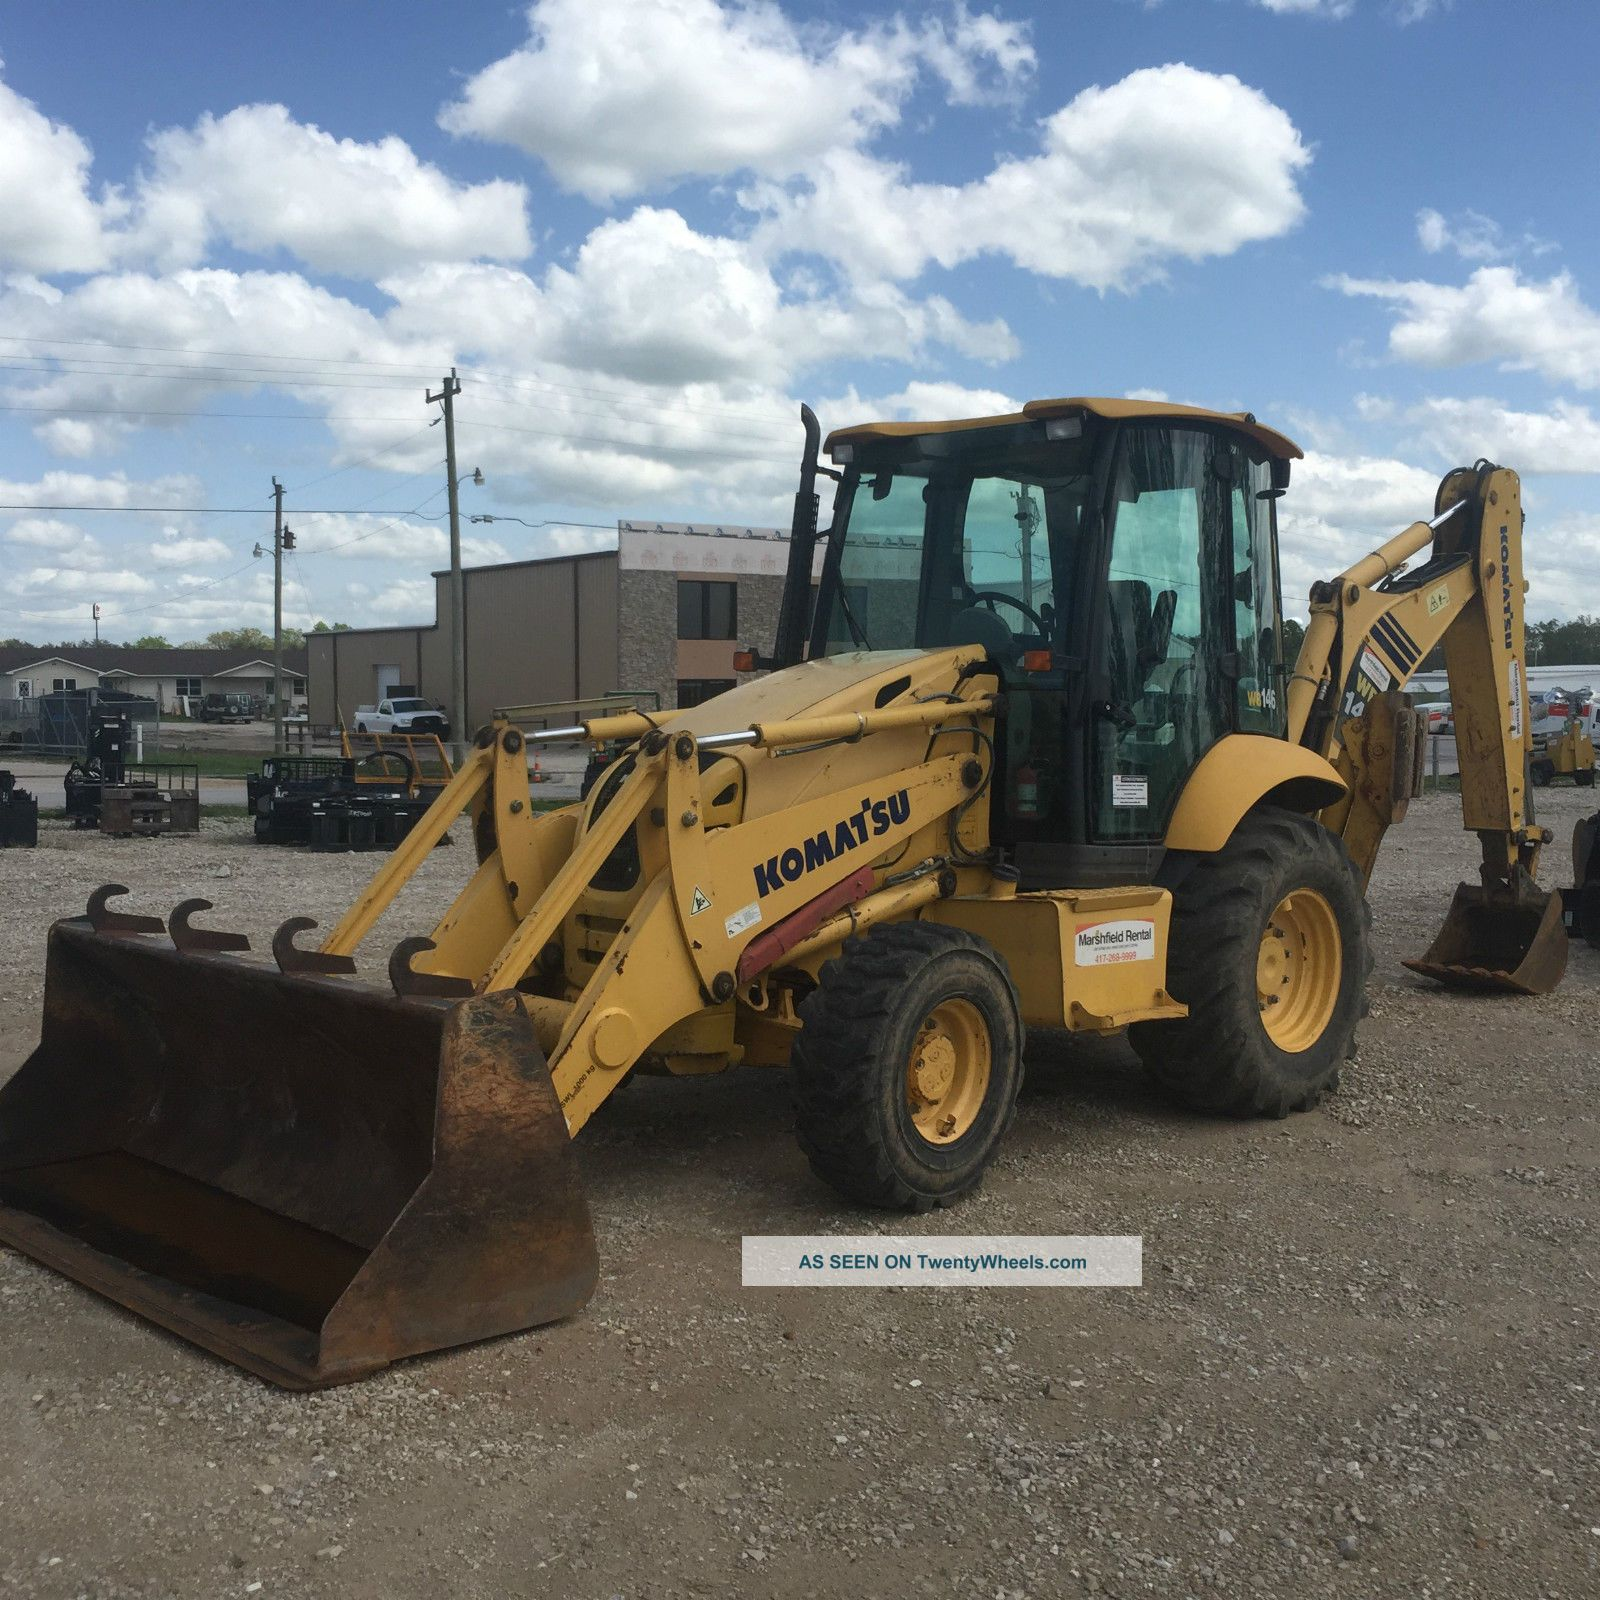 2007 Komatsu Wb146 Backhoe Extendahoe 4x4 Backhoe Loaders photo